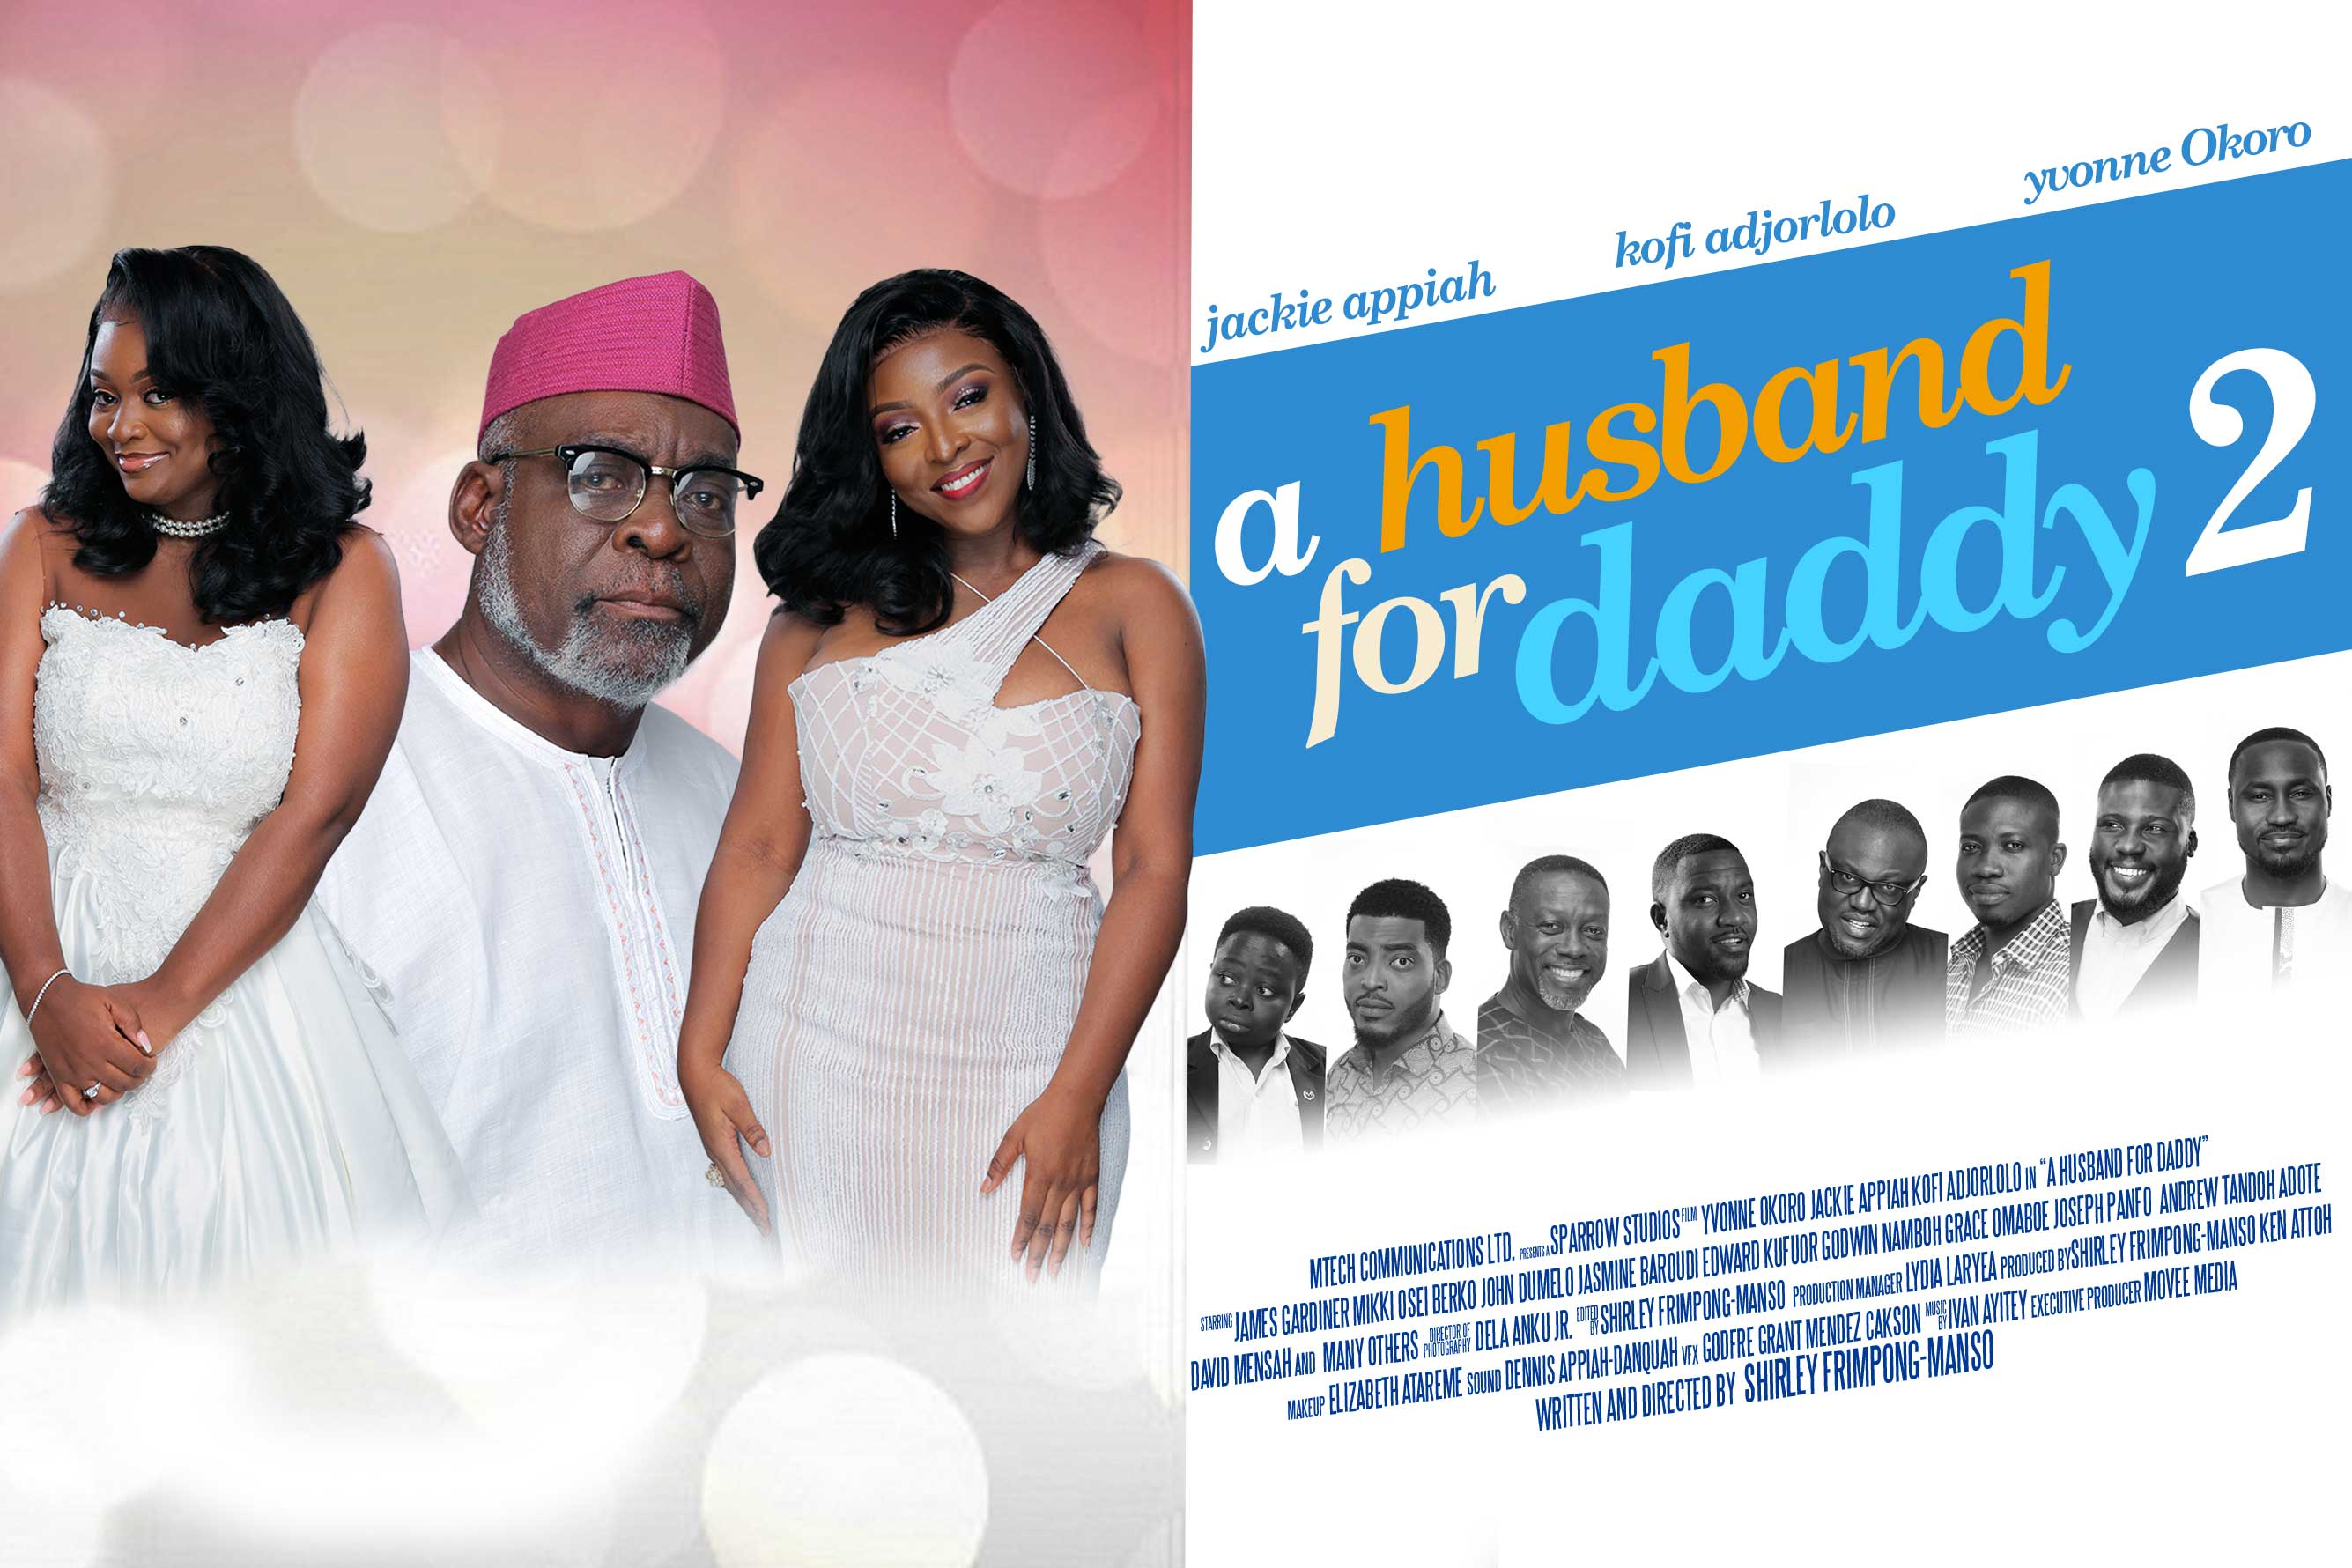 A Husband For Daddy 2 logo